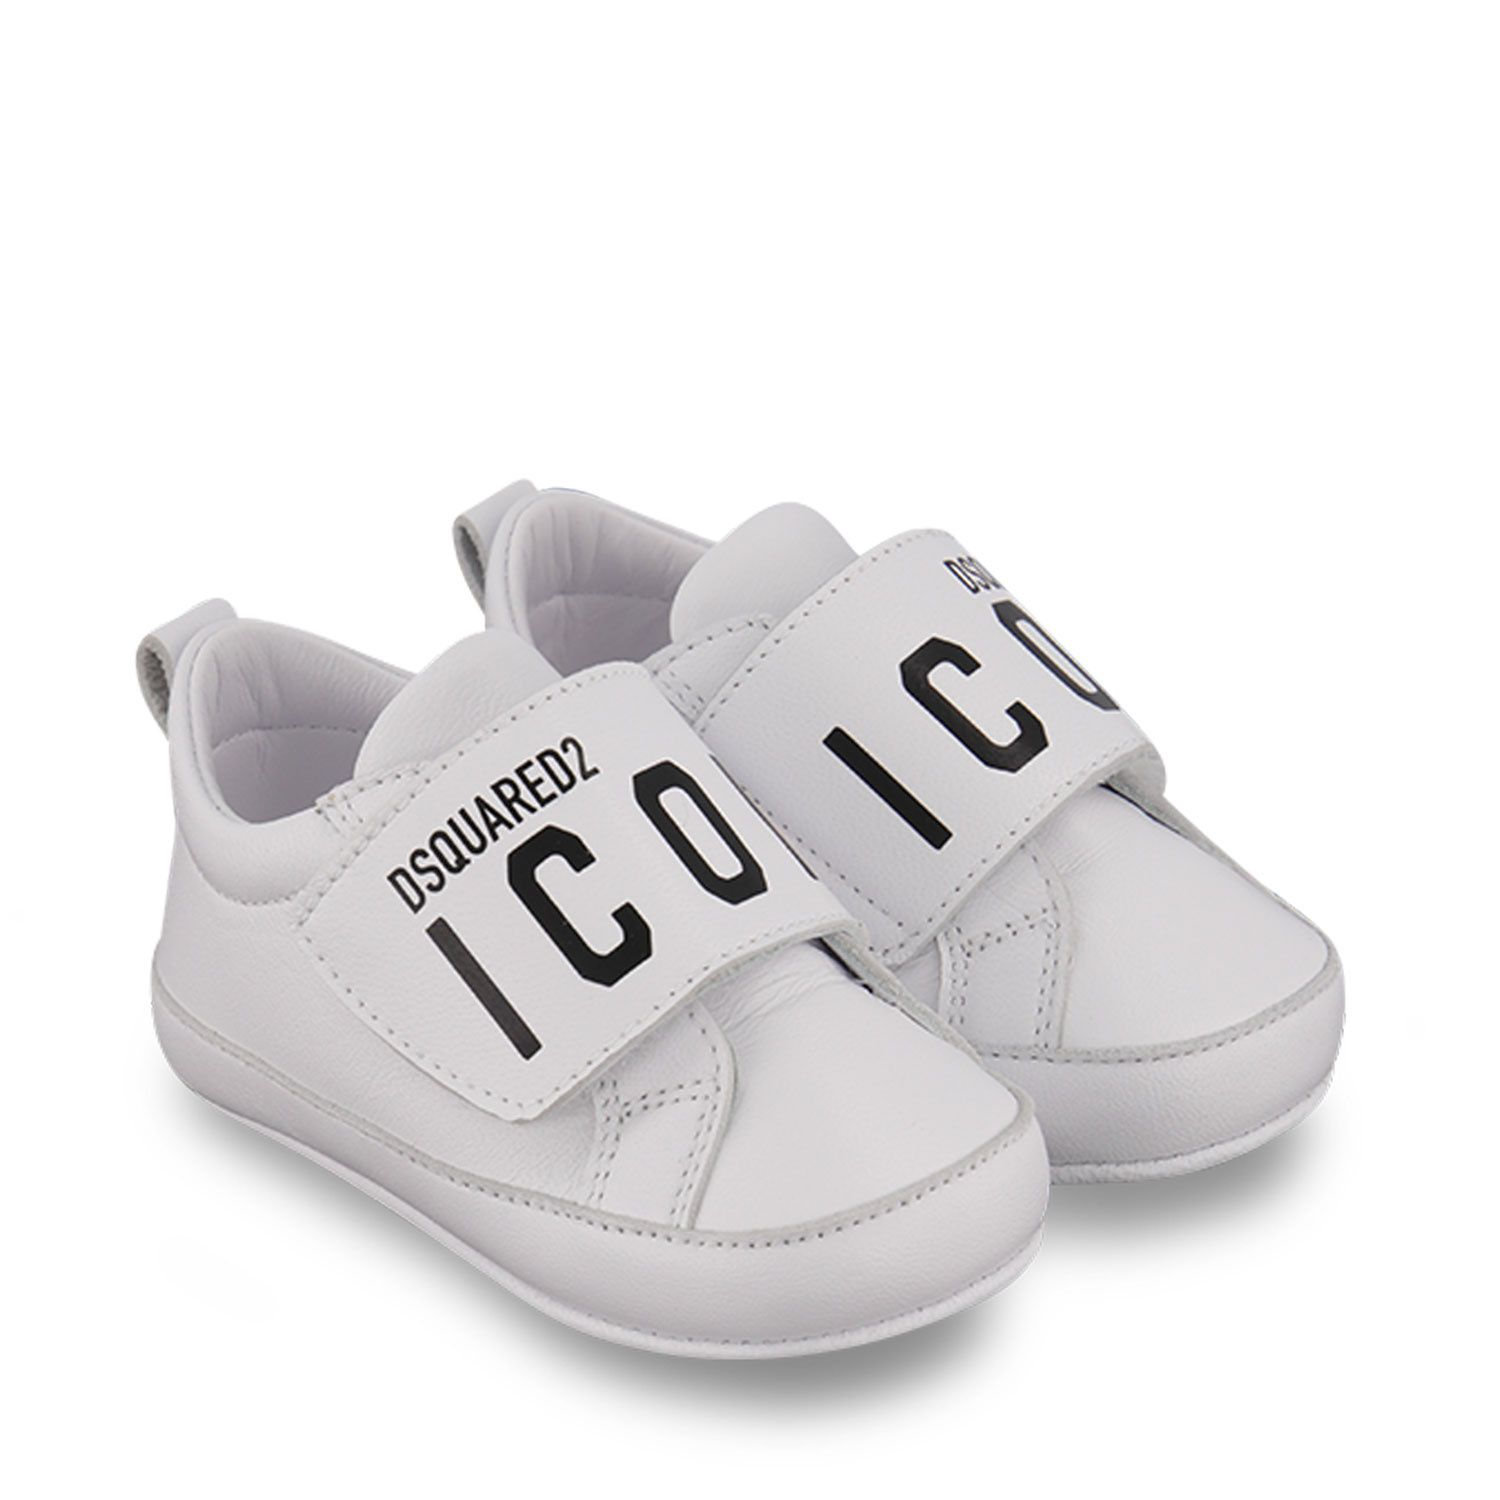 Picture of Dsquared2 68631 baby sneakers white